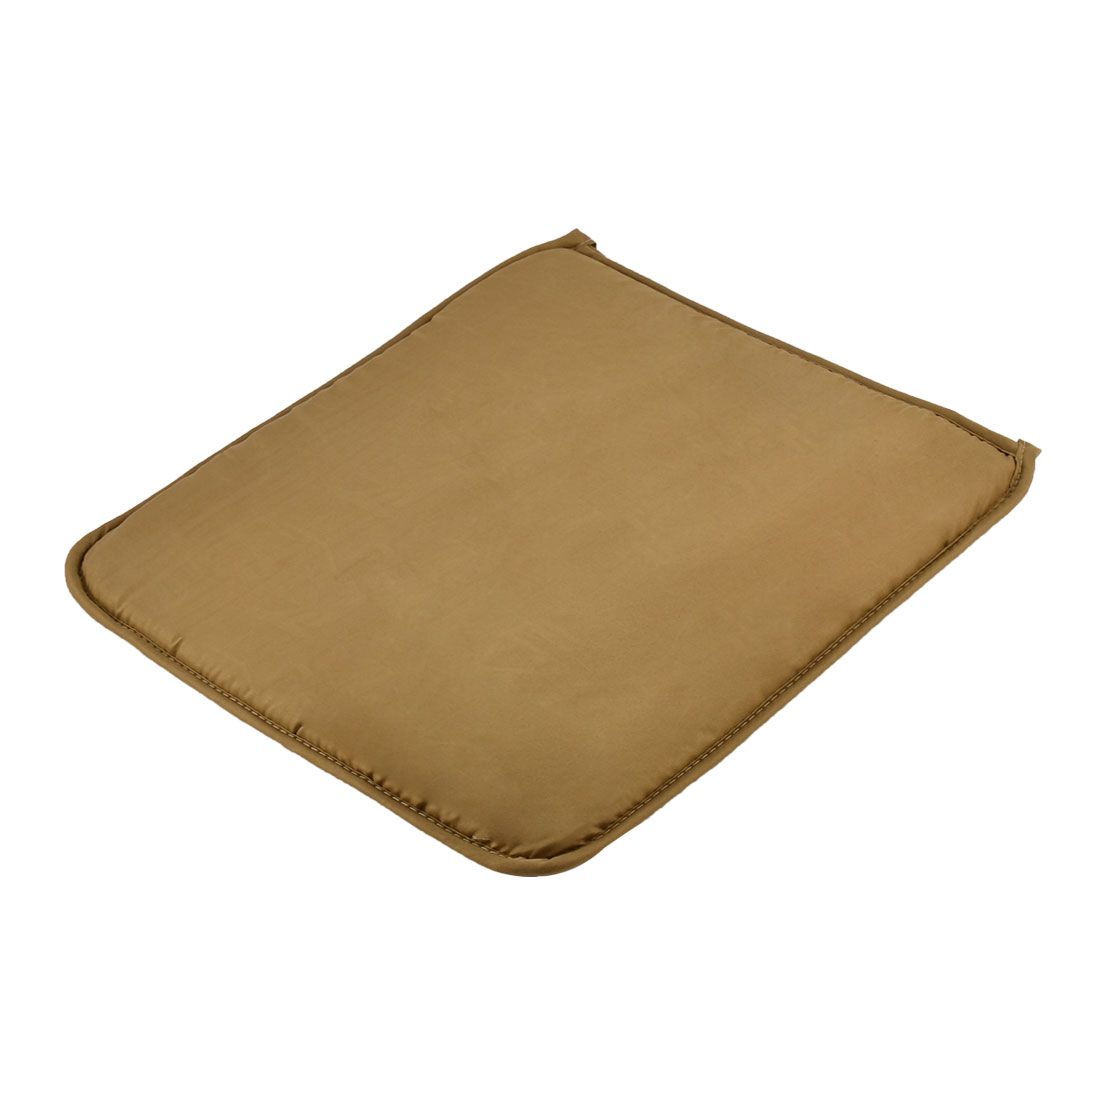 Home Office Sponge Solid Anti Slip Seat Chair Cushion Pad Cover Brown 39 x 39cm